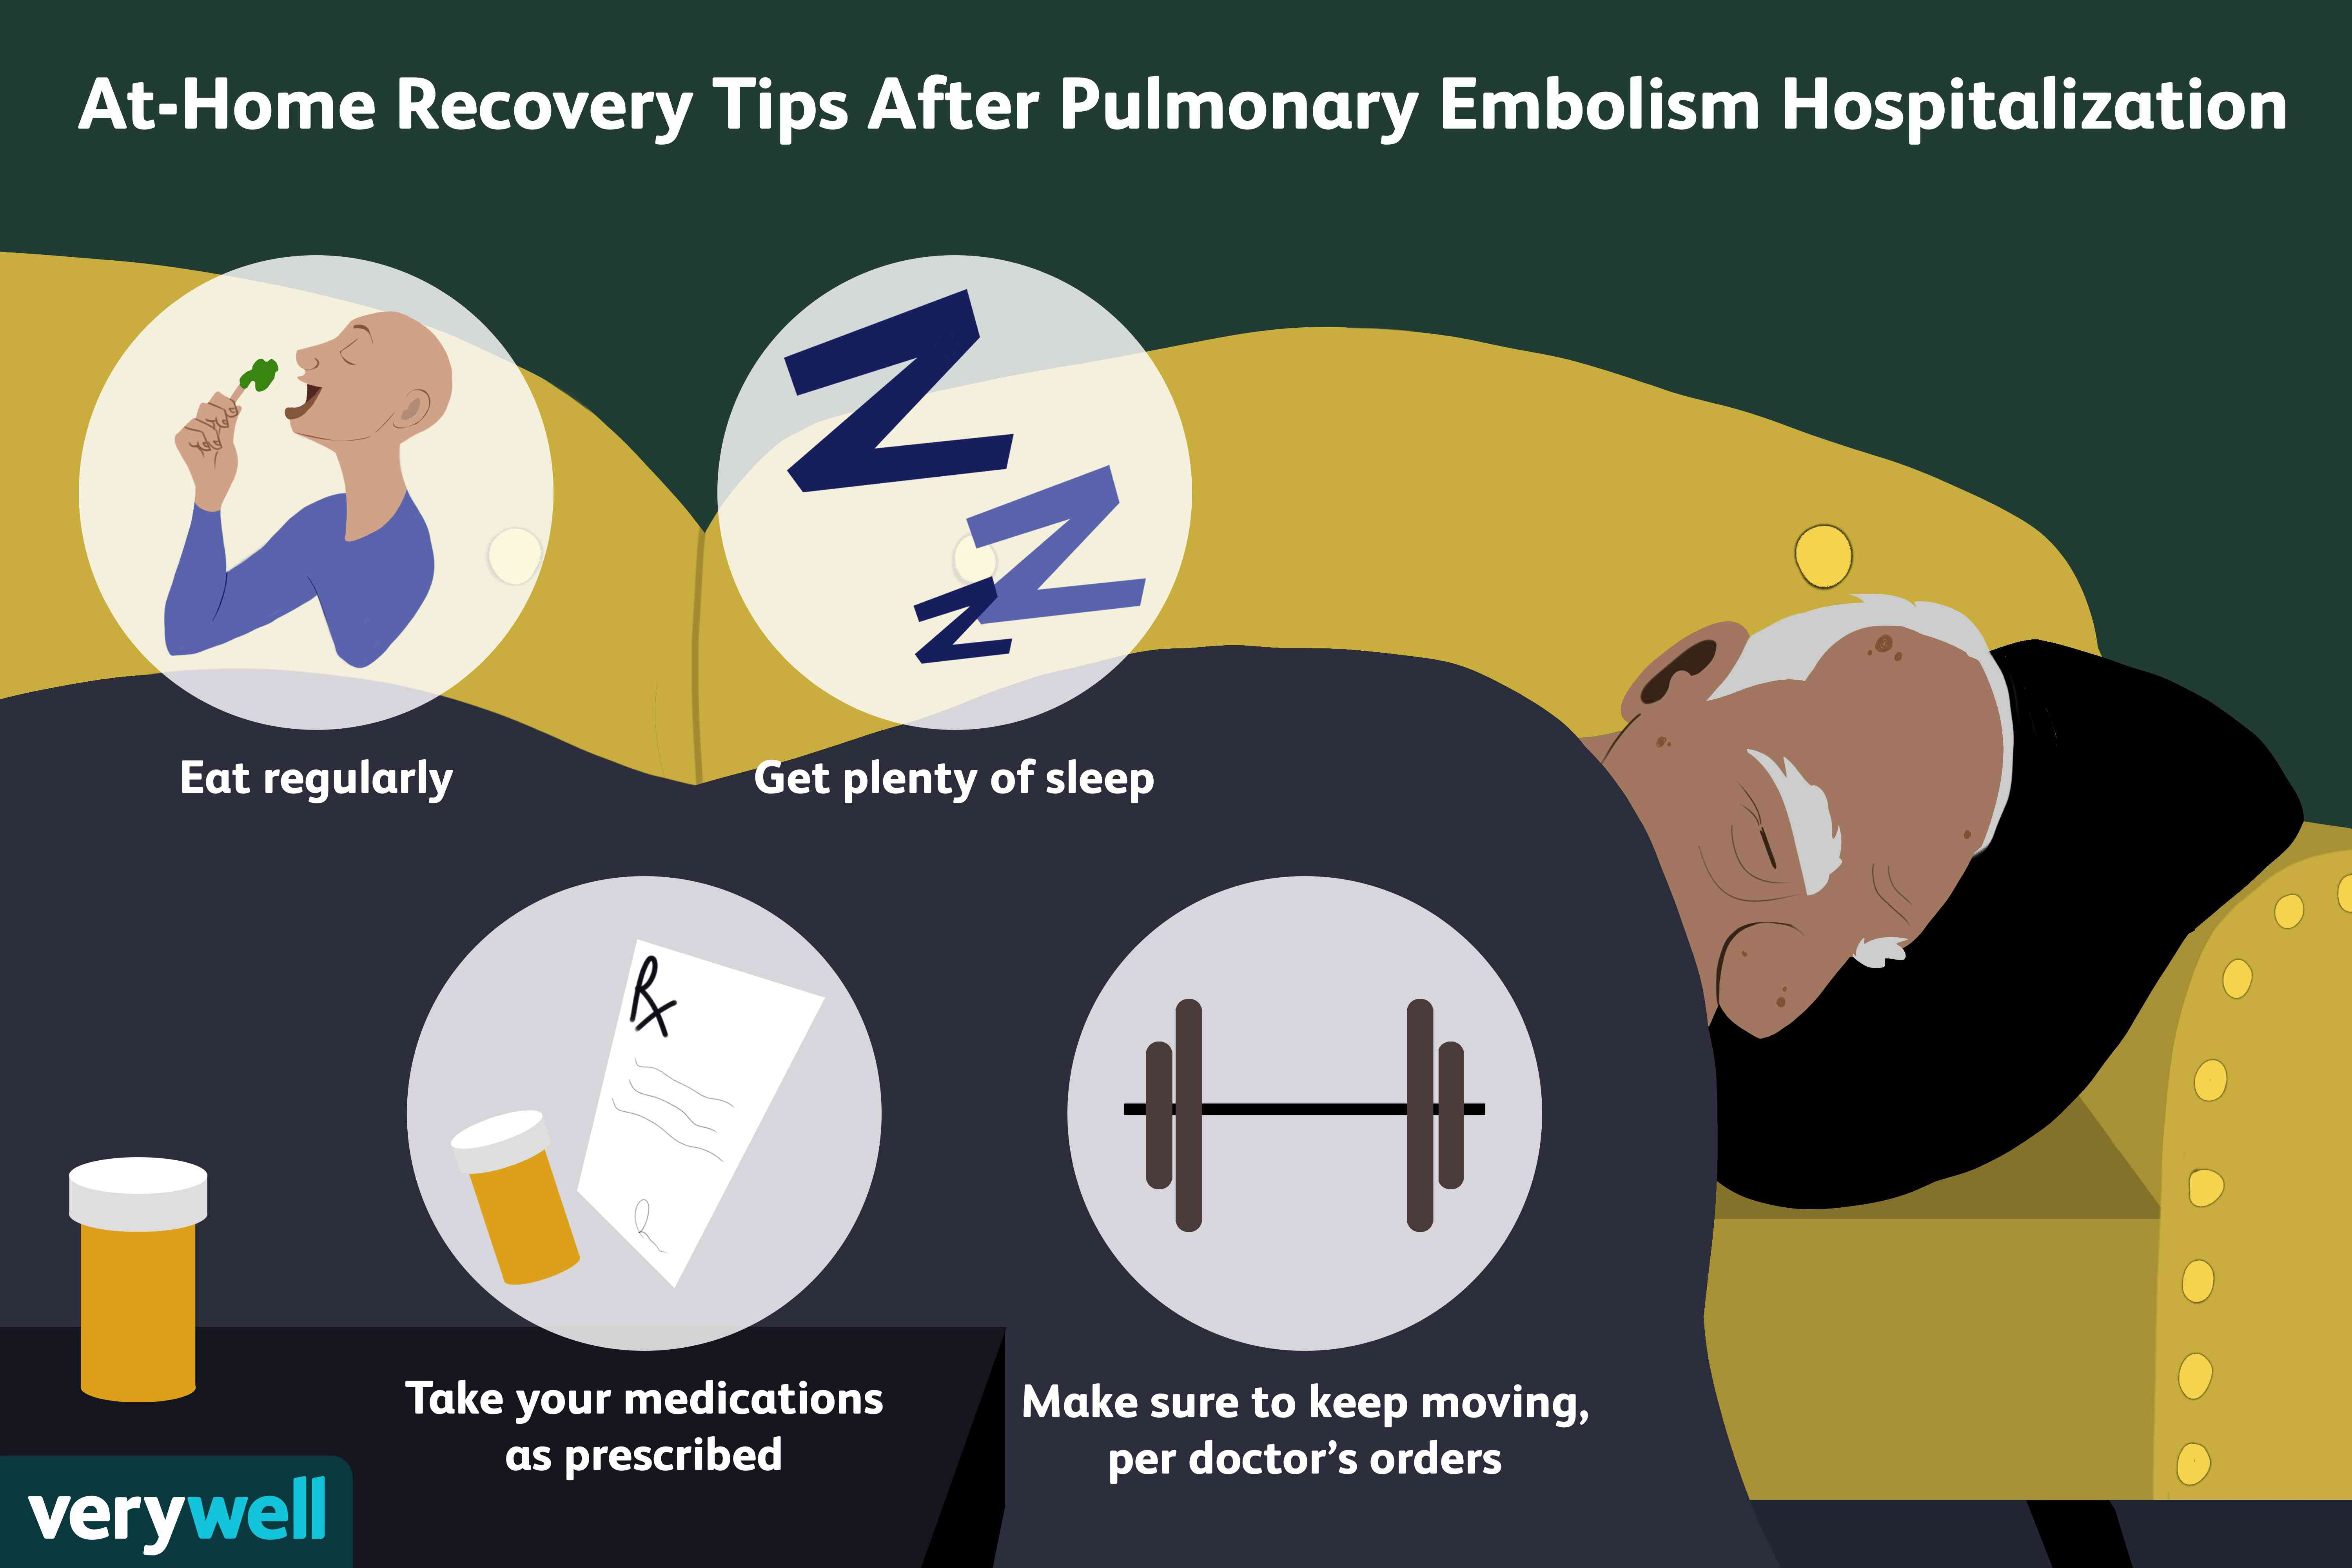 At-home recovery tips after a pulmonary embolism.